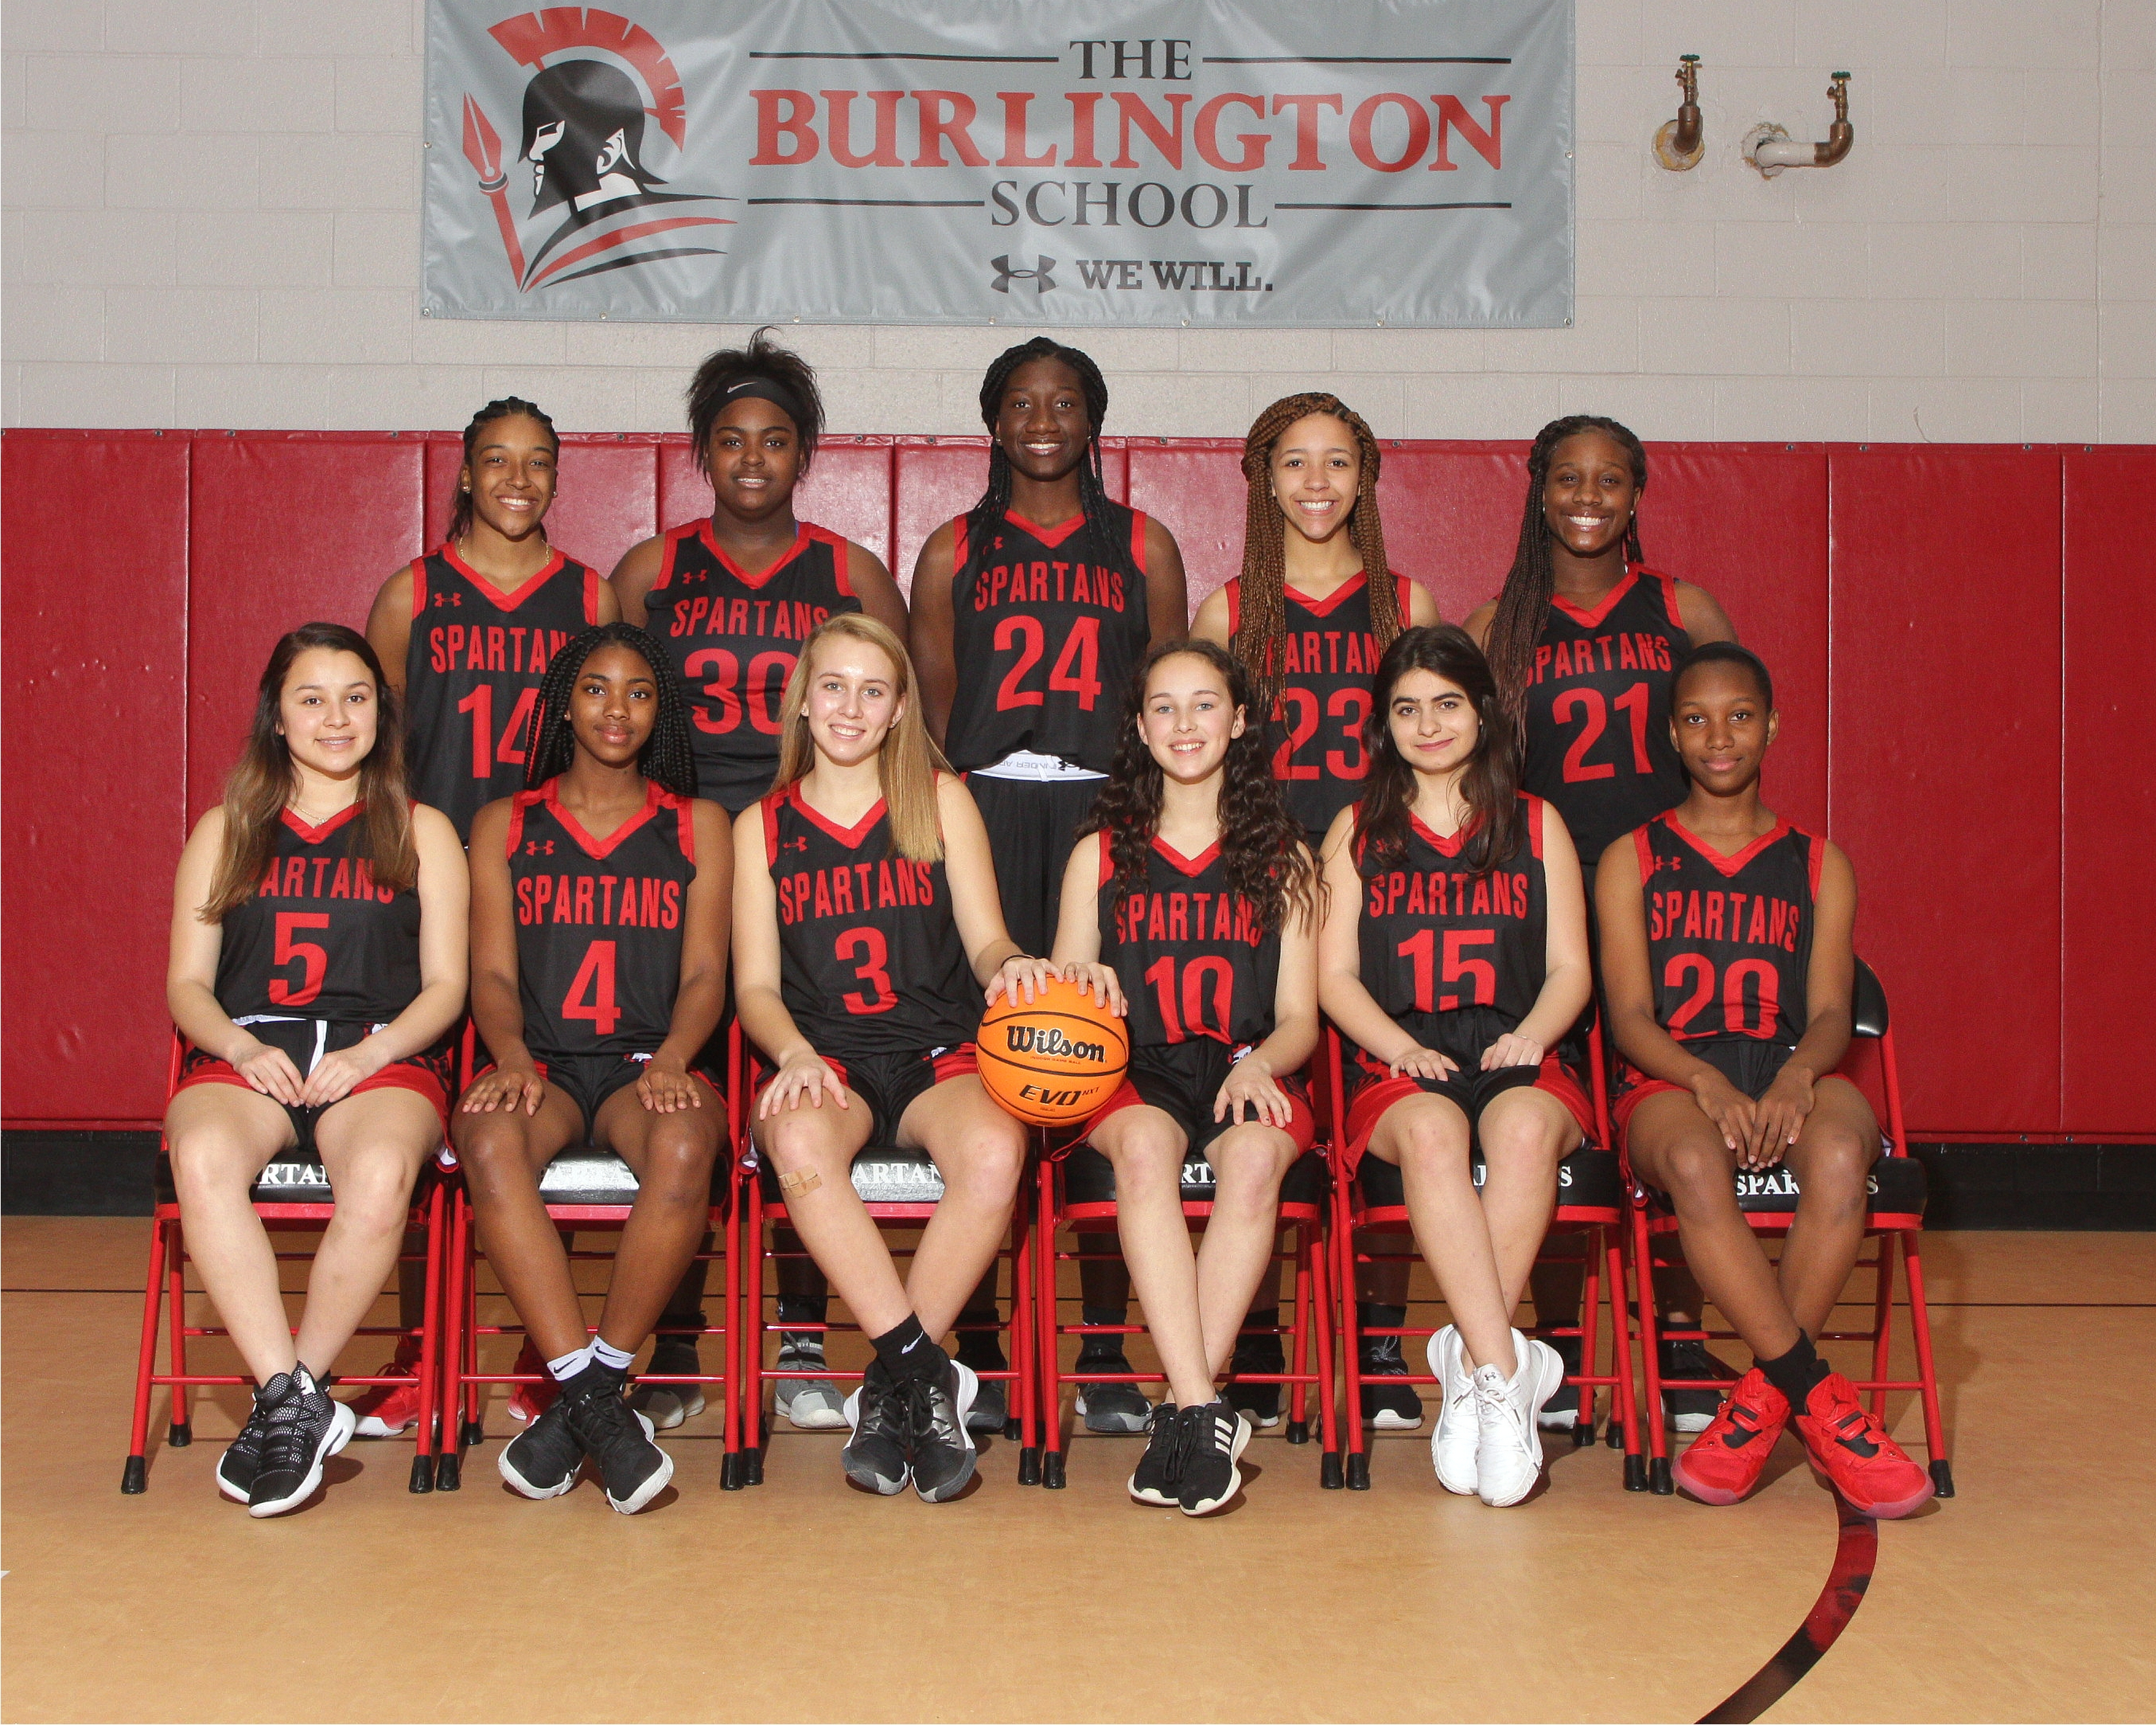 2019-20 varsity girls basketball team